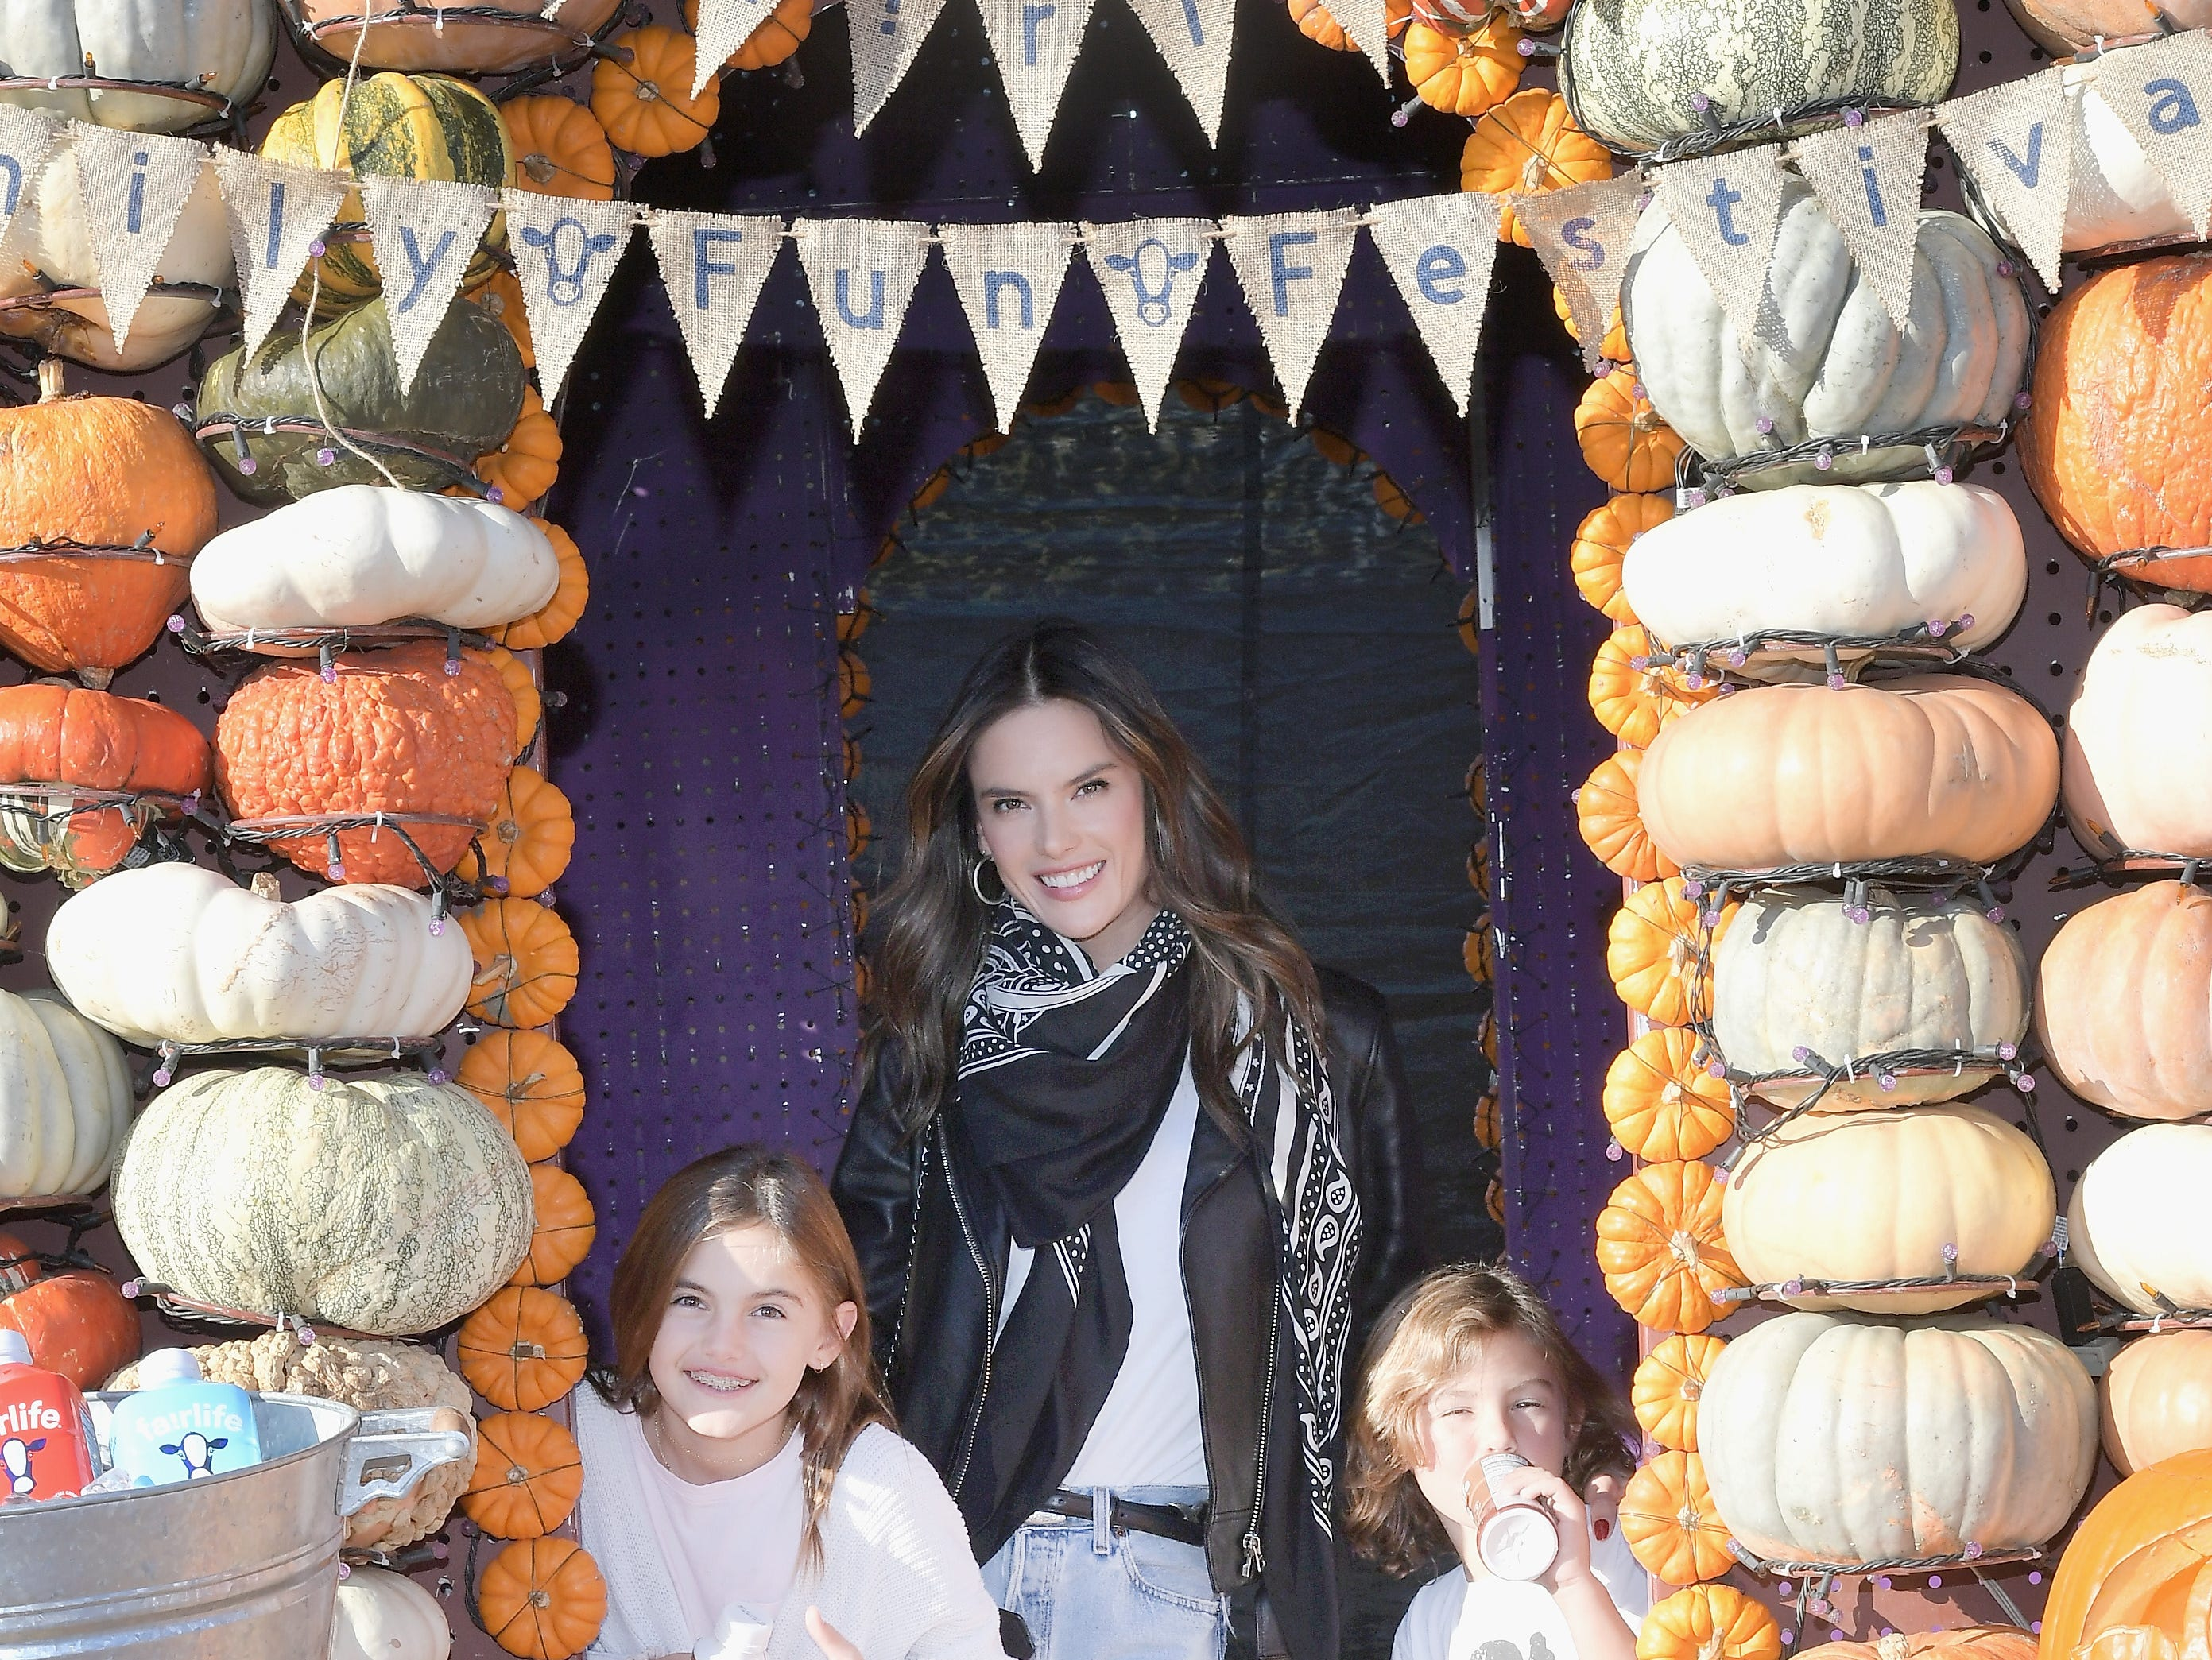 CULVER CITY, CA - OCTOBER 15:  (L-R) Anja Louise Ambrosio Mazur, Alessandra Ambrosio and Noah Phoenix Ambrosio Mazur attend The fairlife Family Fun Festival Hosted by fairlife Ultra-Filtered Milk at Mr. Bones Pumpkin Patch on October 15, 2018 in Culver City, California.  (Photo by Charley Gallay/Getty Images for fairlife ) ORG XMIT: 775241654 ORIG FILE ID: 1052227048